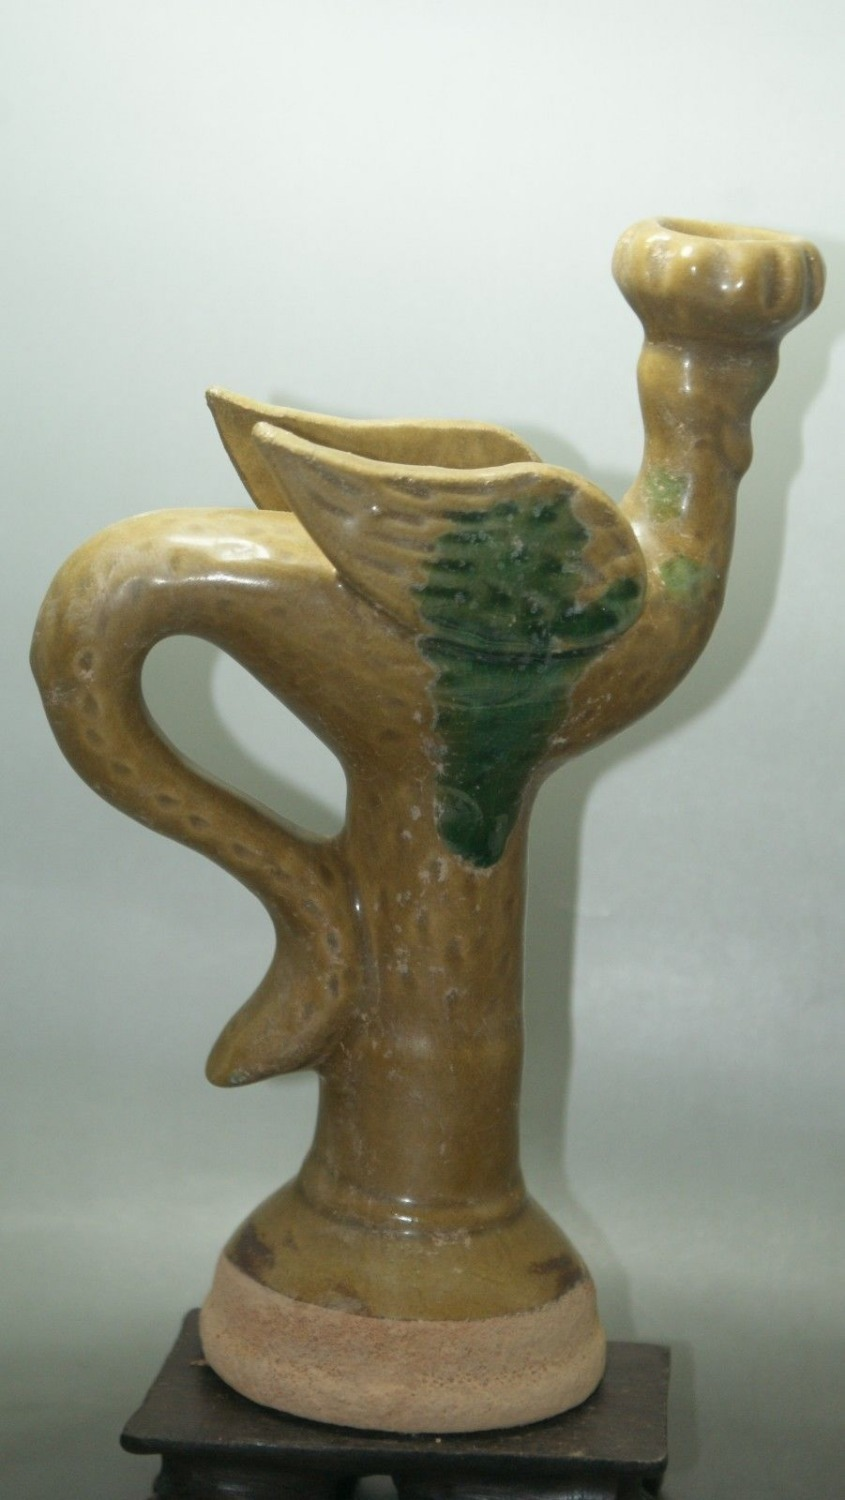 Fine Old China Crackle Glaze Ceramic Porcelain & Pottery Ancient Lamp Collectible old porcelain